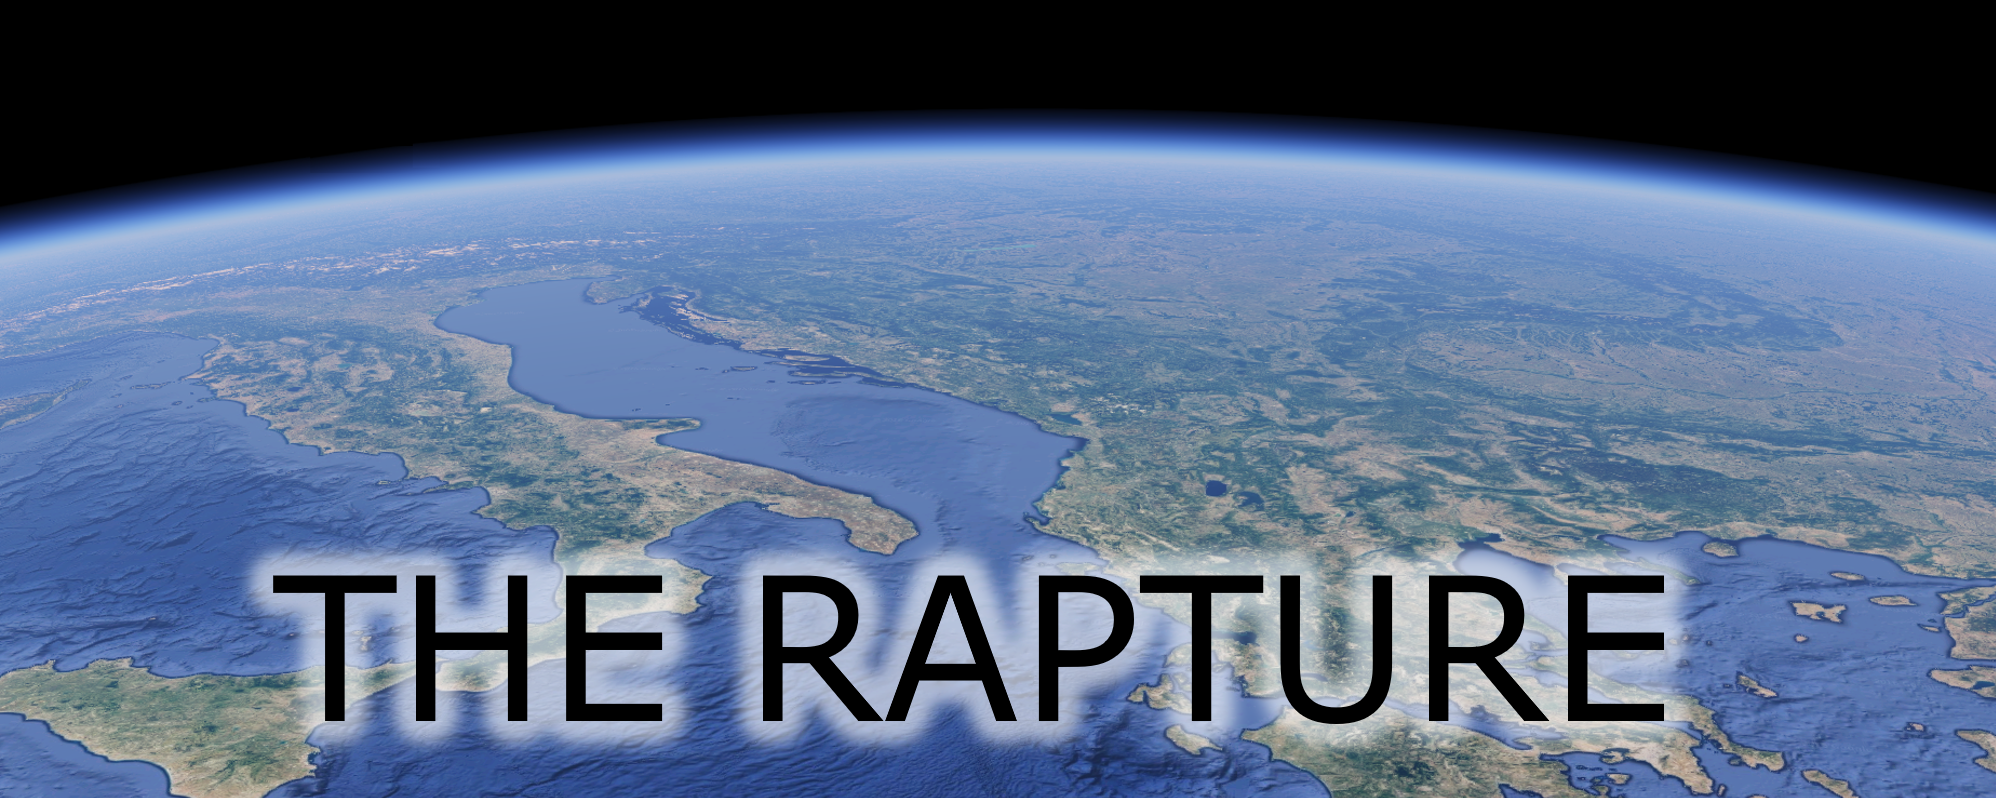 Q&A: A Second Chance after the Rapture?